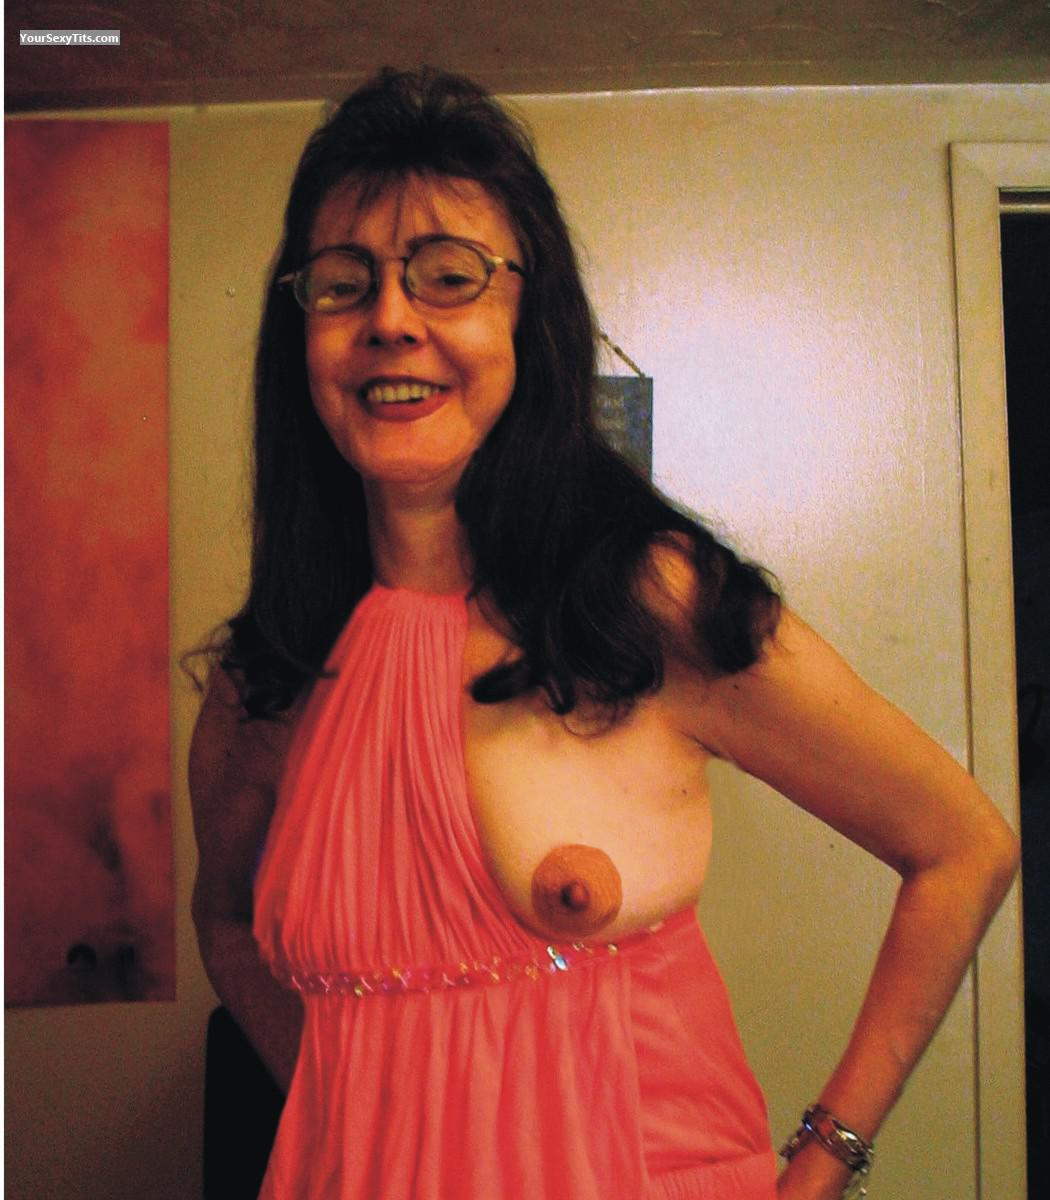 Medium Tits Topless CarolynCumLover